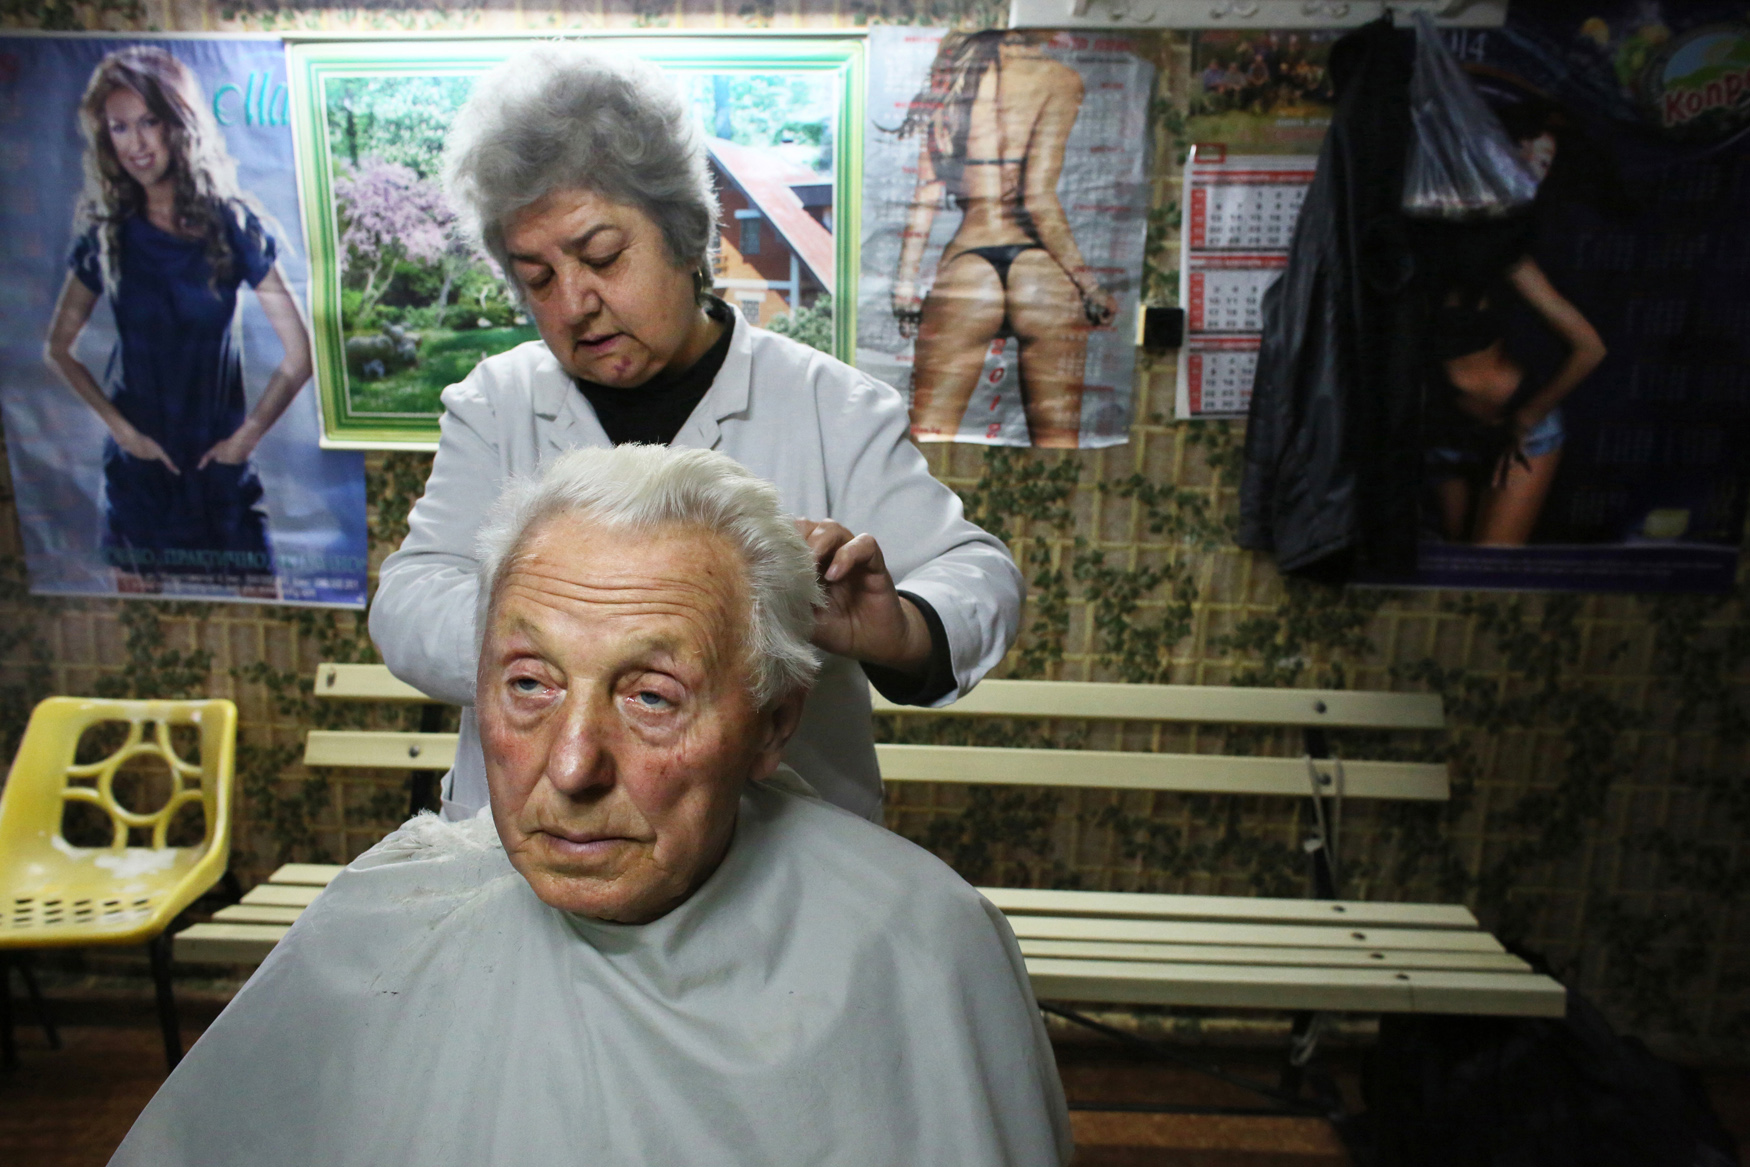 Hair dresser Pavlinka Paskova, 59, cuts the hair of Stanko Petrov Vulchev, 80, in Vidin, Bulgaria, on October 30th, 2014. Paskova  says she has very few customers in this town of waning population: {quote}There's little hope of prosperity for the young here - they've all emigrated.{quote}Bulgaria has the most extreme population decline in the world — much due to post-1989 emigration, high death rates and low birth rates. There are so few people of child-bearing age in the nation that population statistics project a 30-percent decrease by 2060, from 7.2 million to just over 5 million. In other words,Bulgaria's population declines by 164 people a day, or 60,000 people a year — 60 percent of them aged over 65.